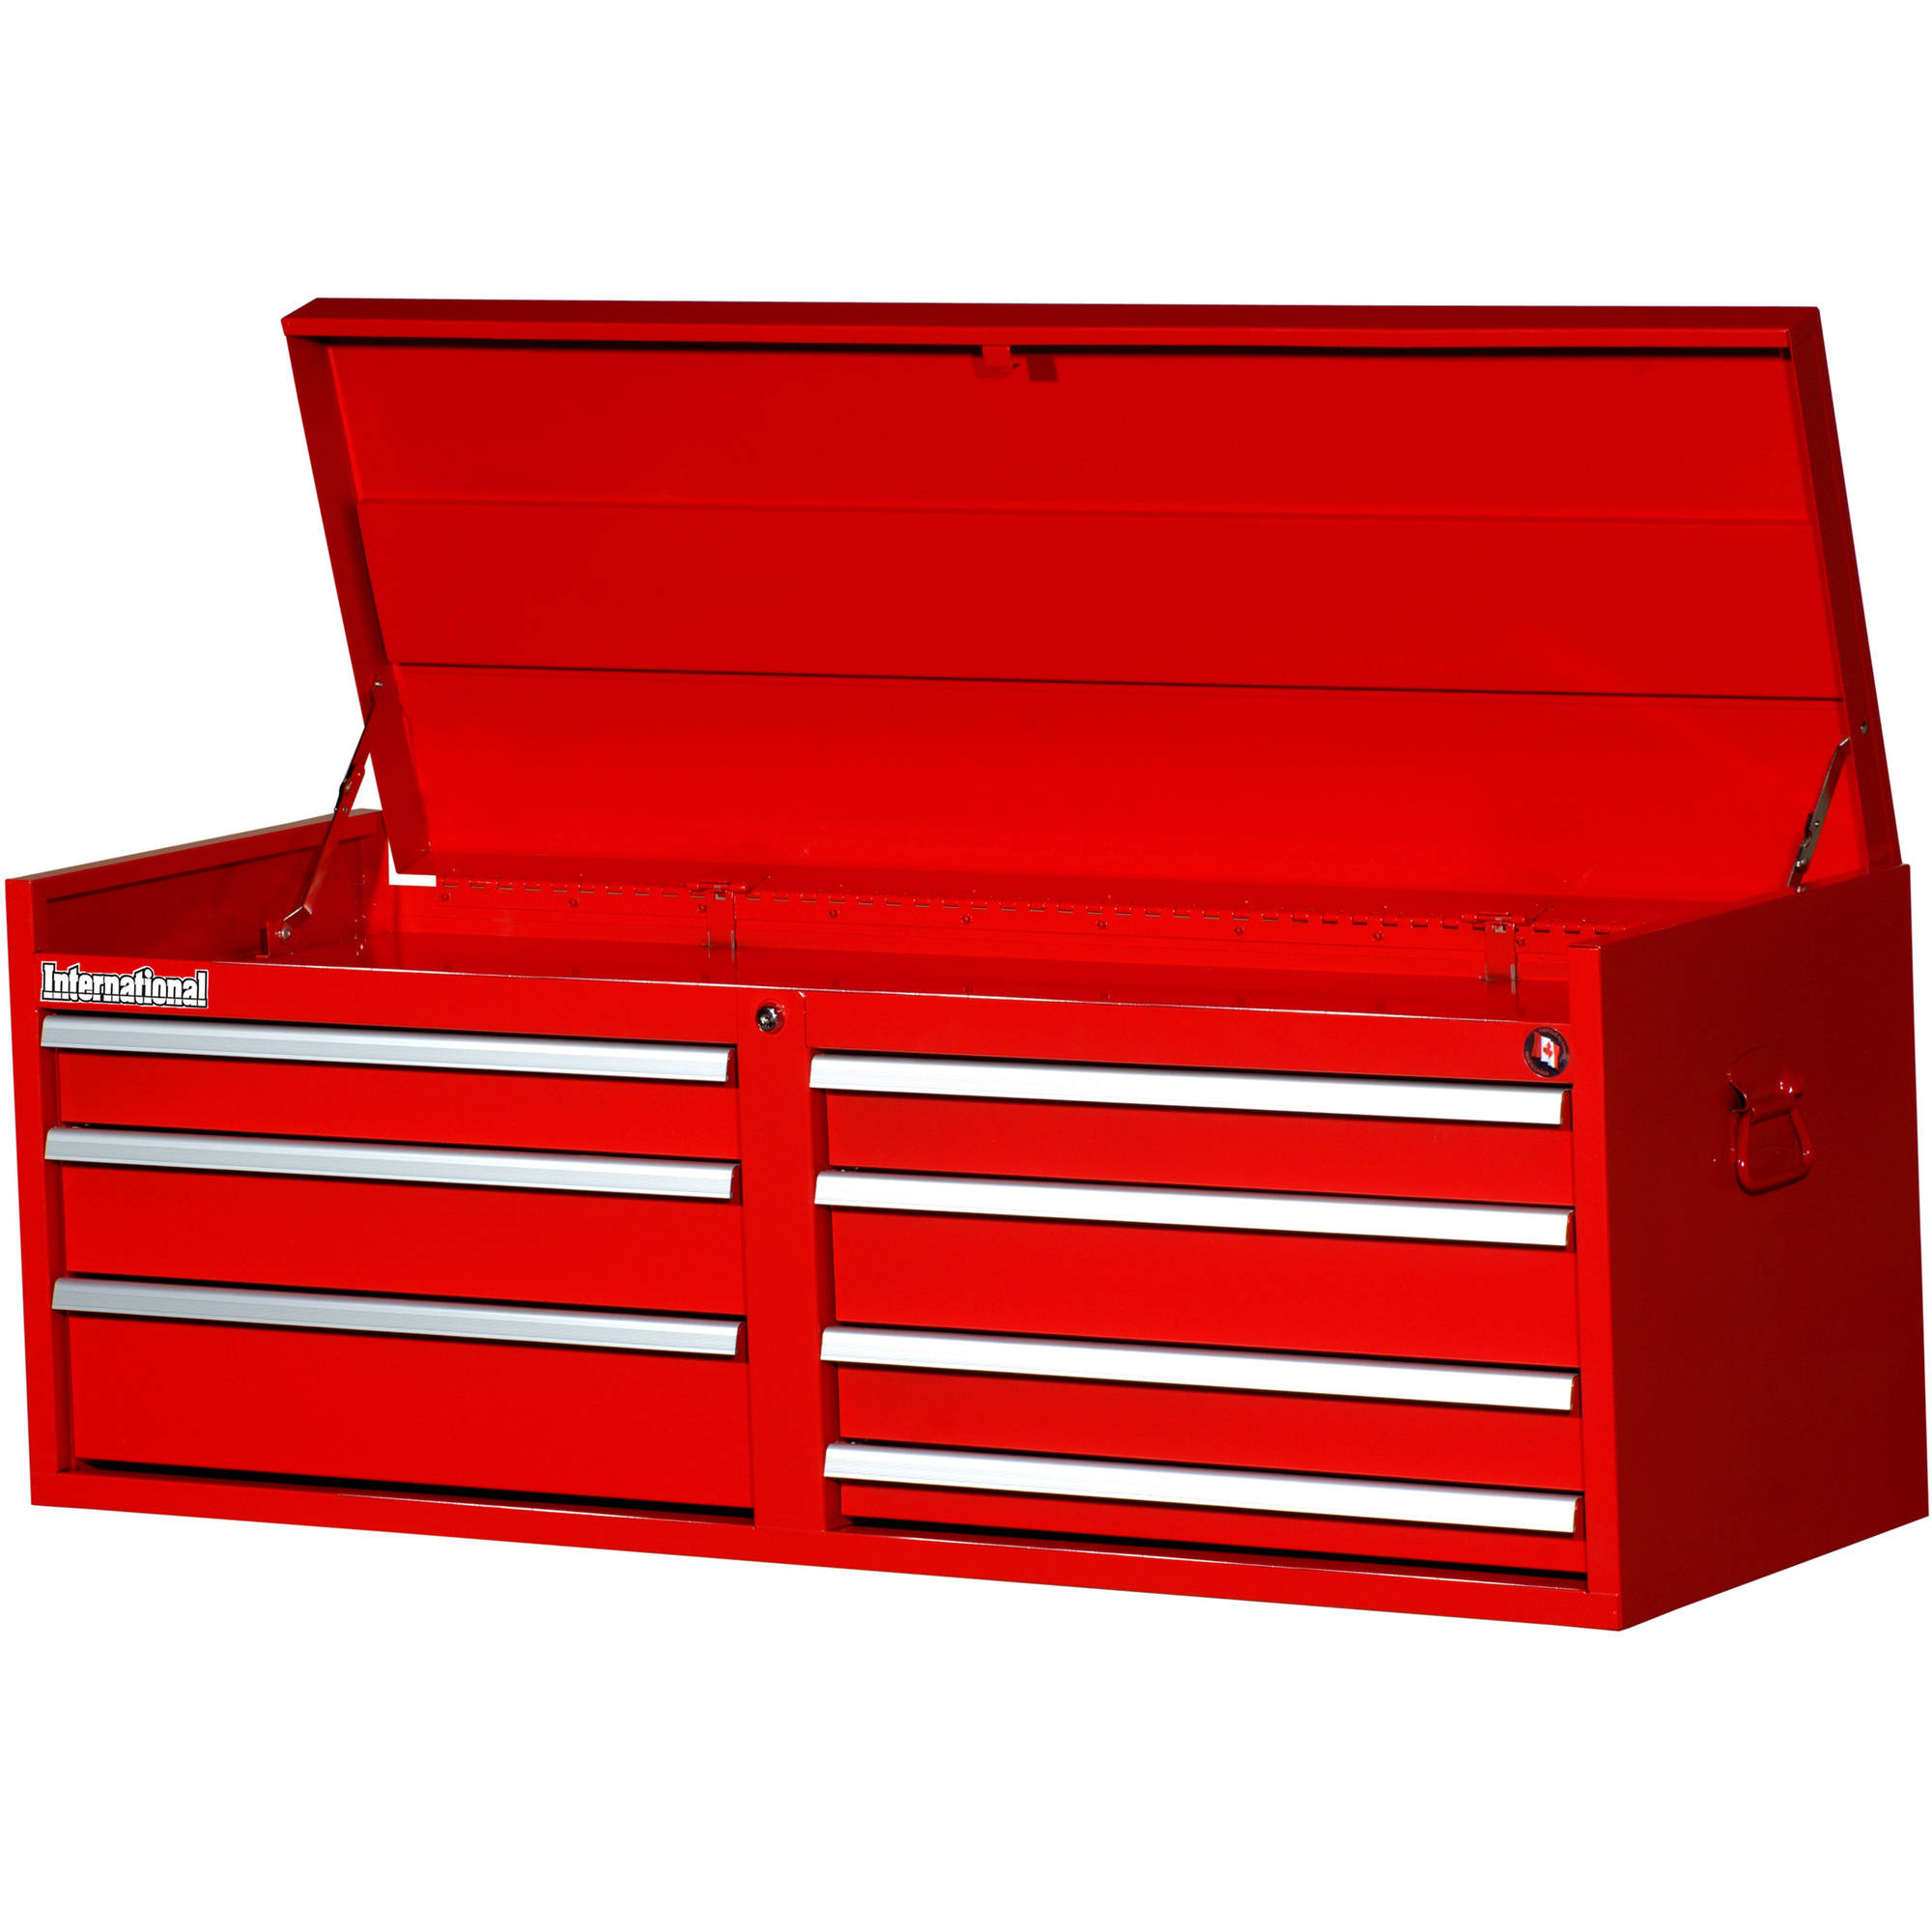 "International Workshop Series 54"" 7-Drawer Ball Bearing Slides Top Chest, Red"